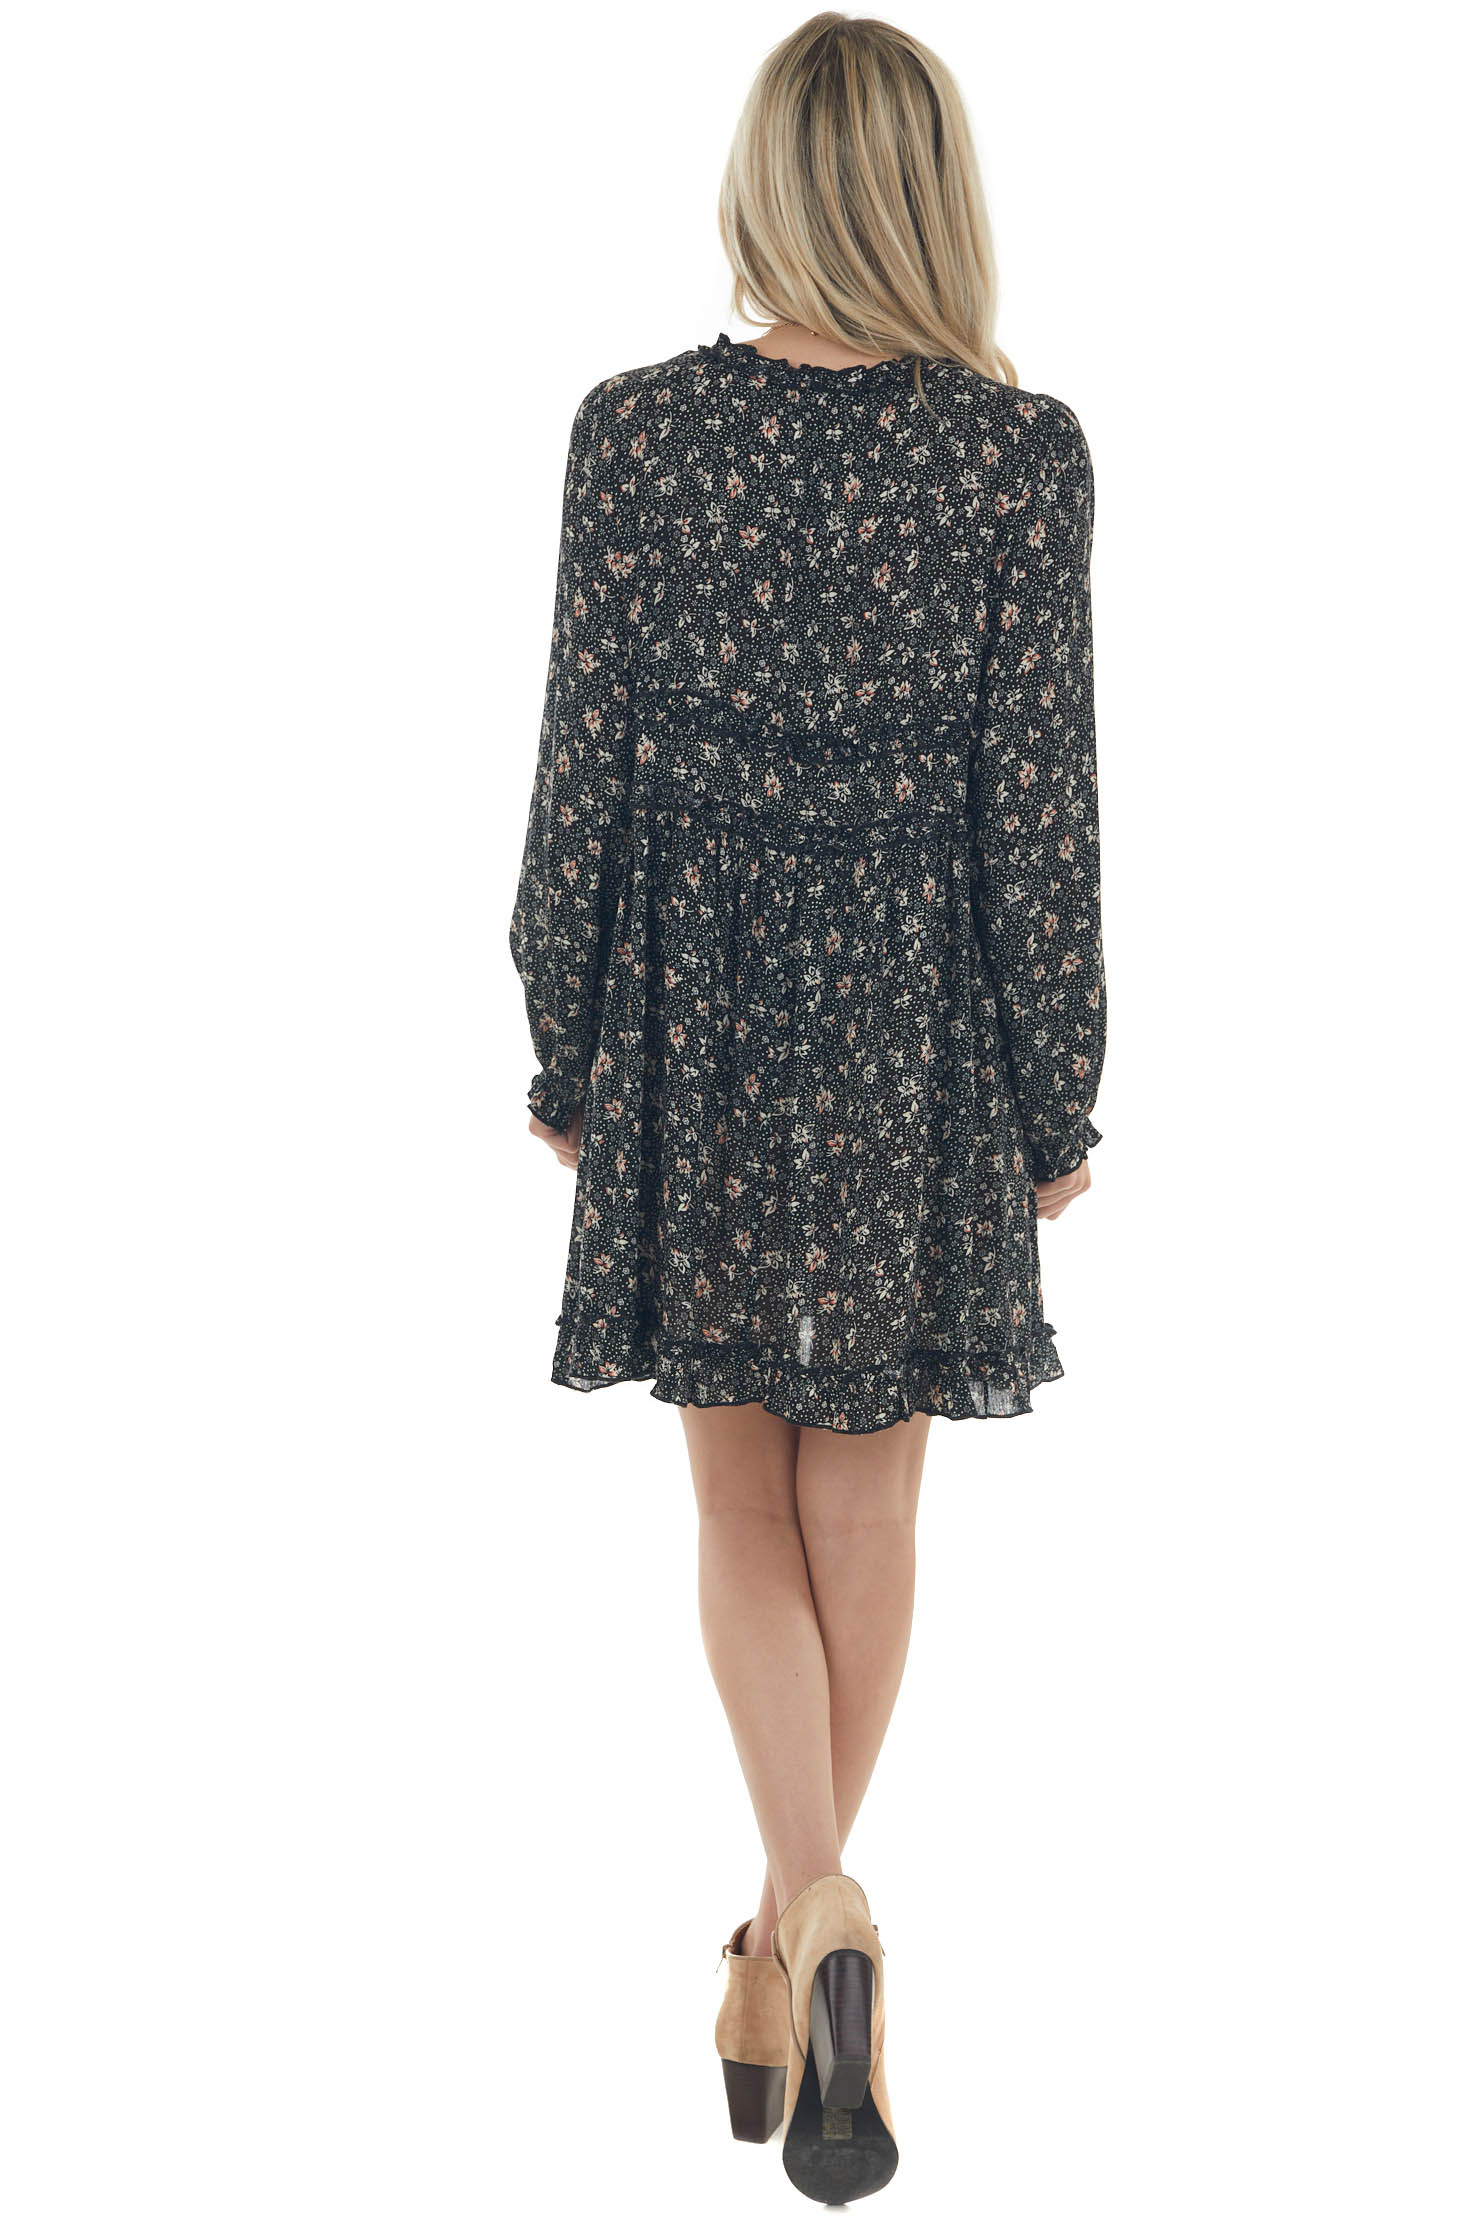 Black and Cream Ditsy Floral Babydoll Dress